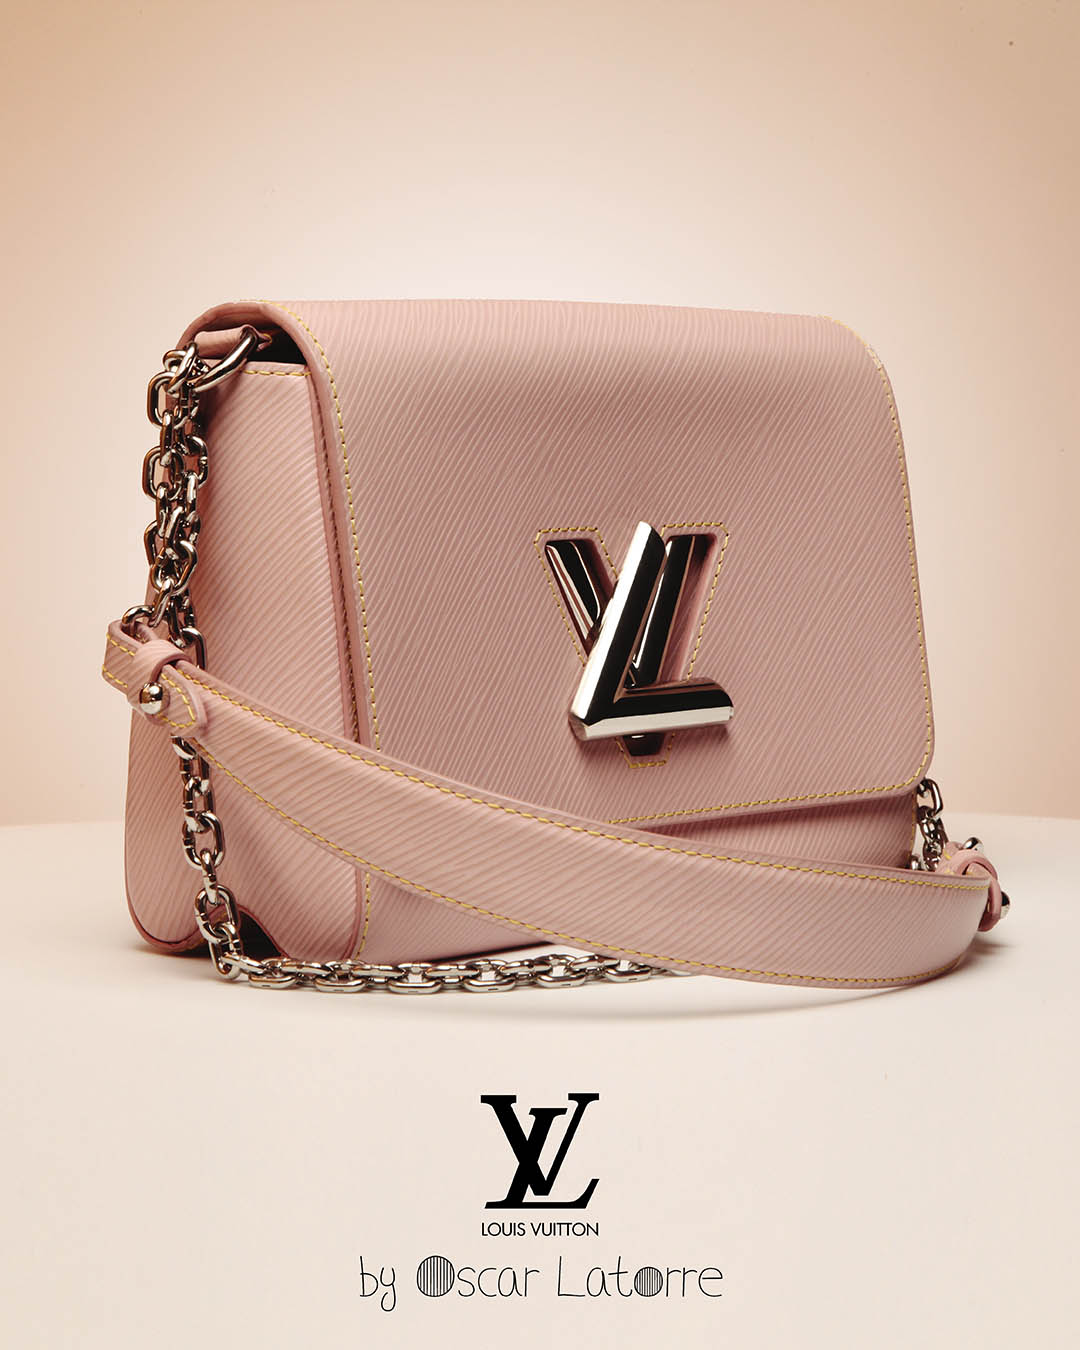 Louis Vuitton by Oscar Latorre